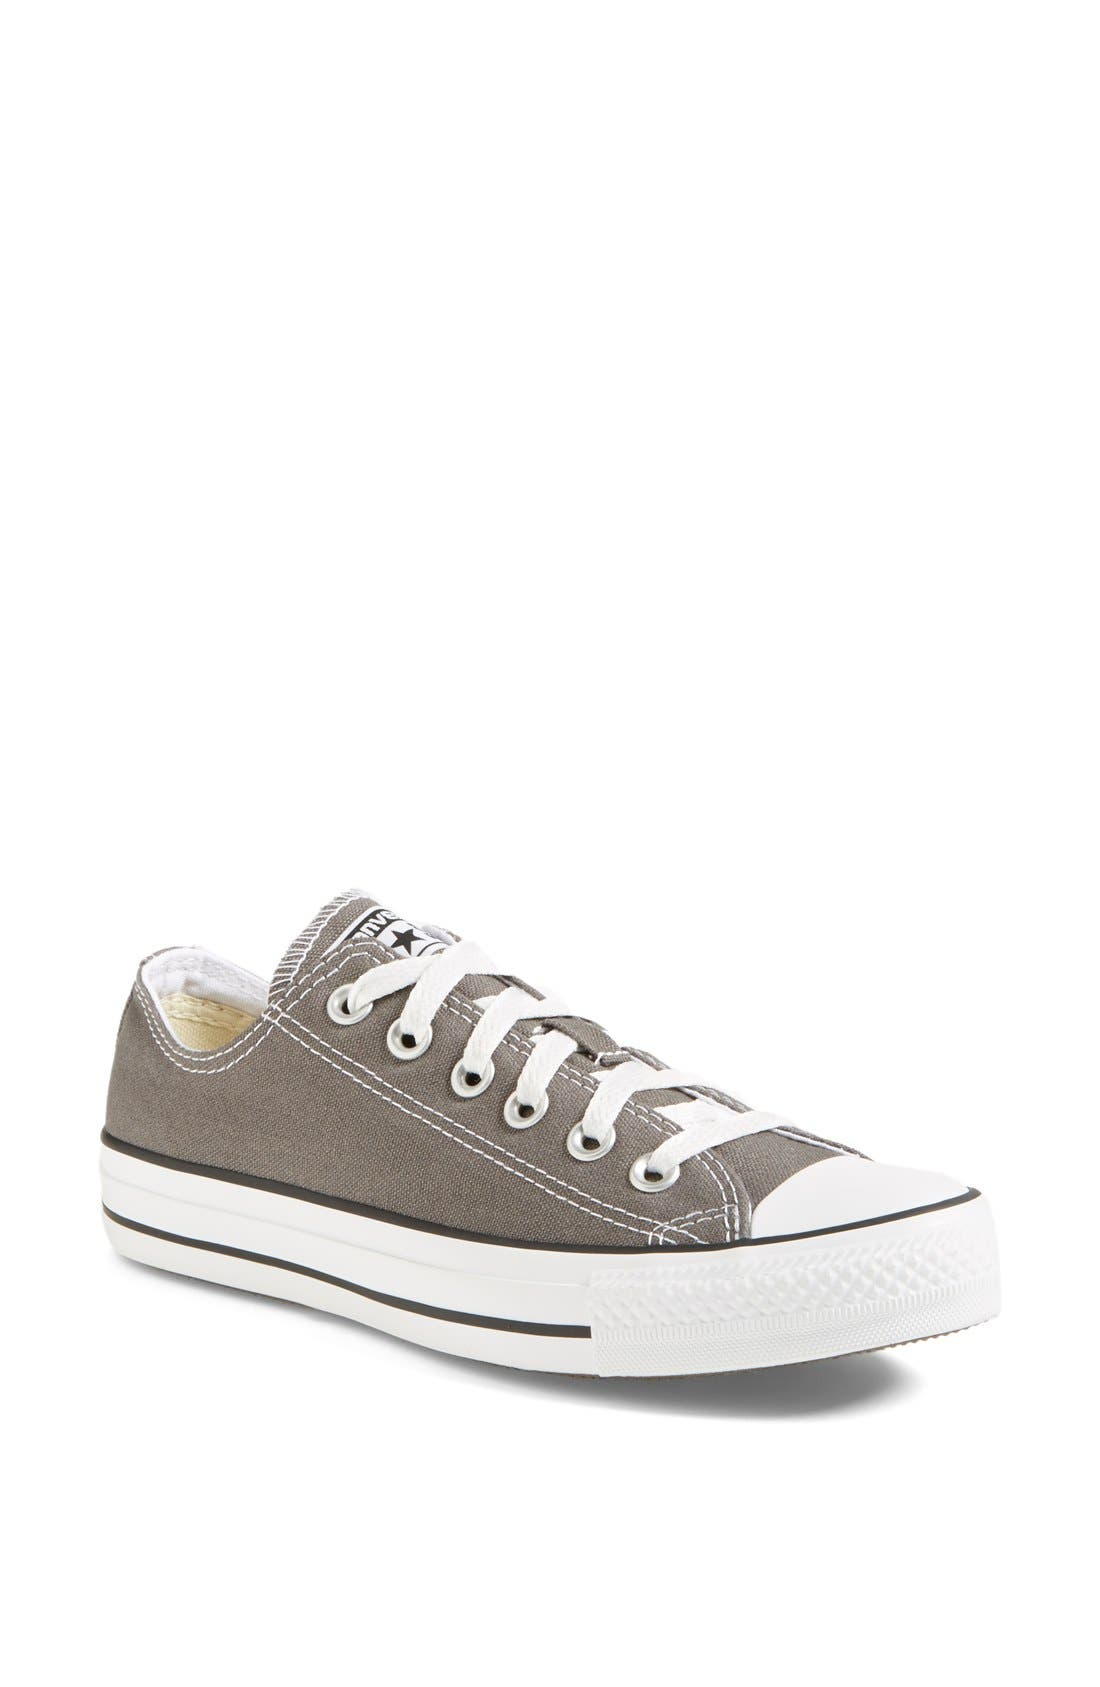 Main Image - Converse Chuck Taylor® Low Sneaker (Women)